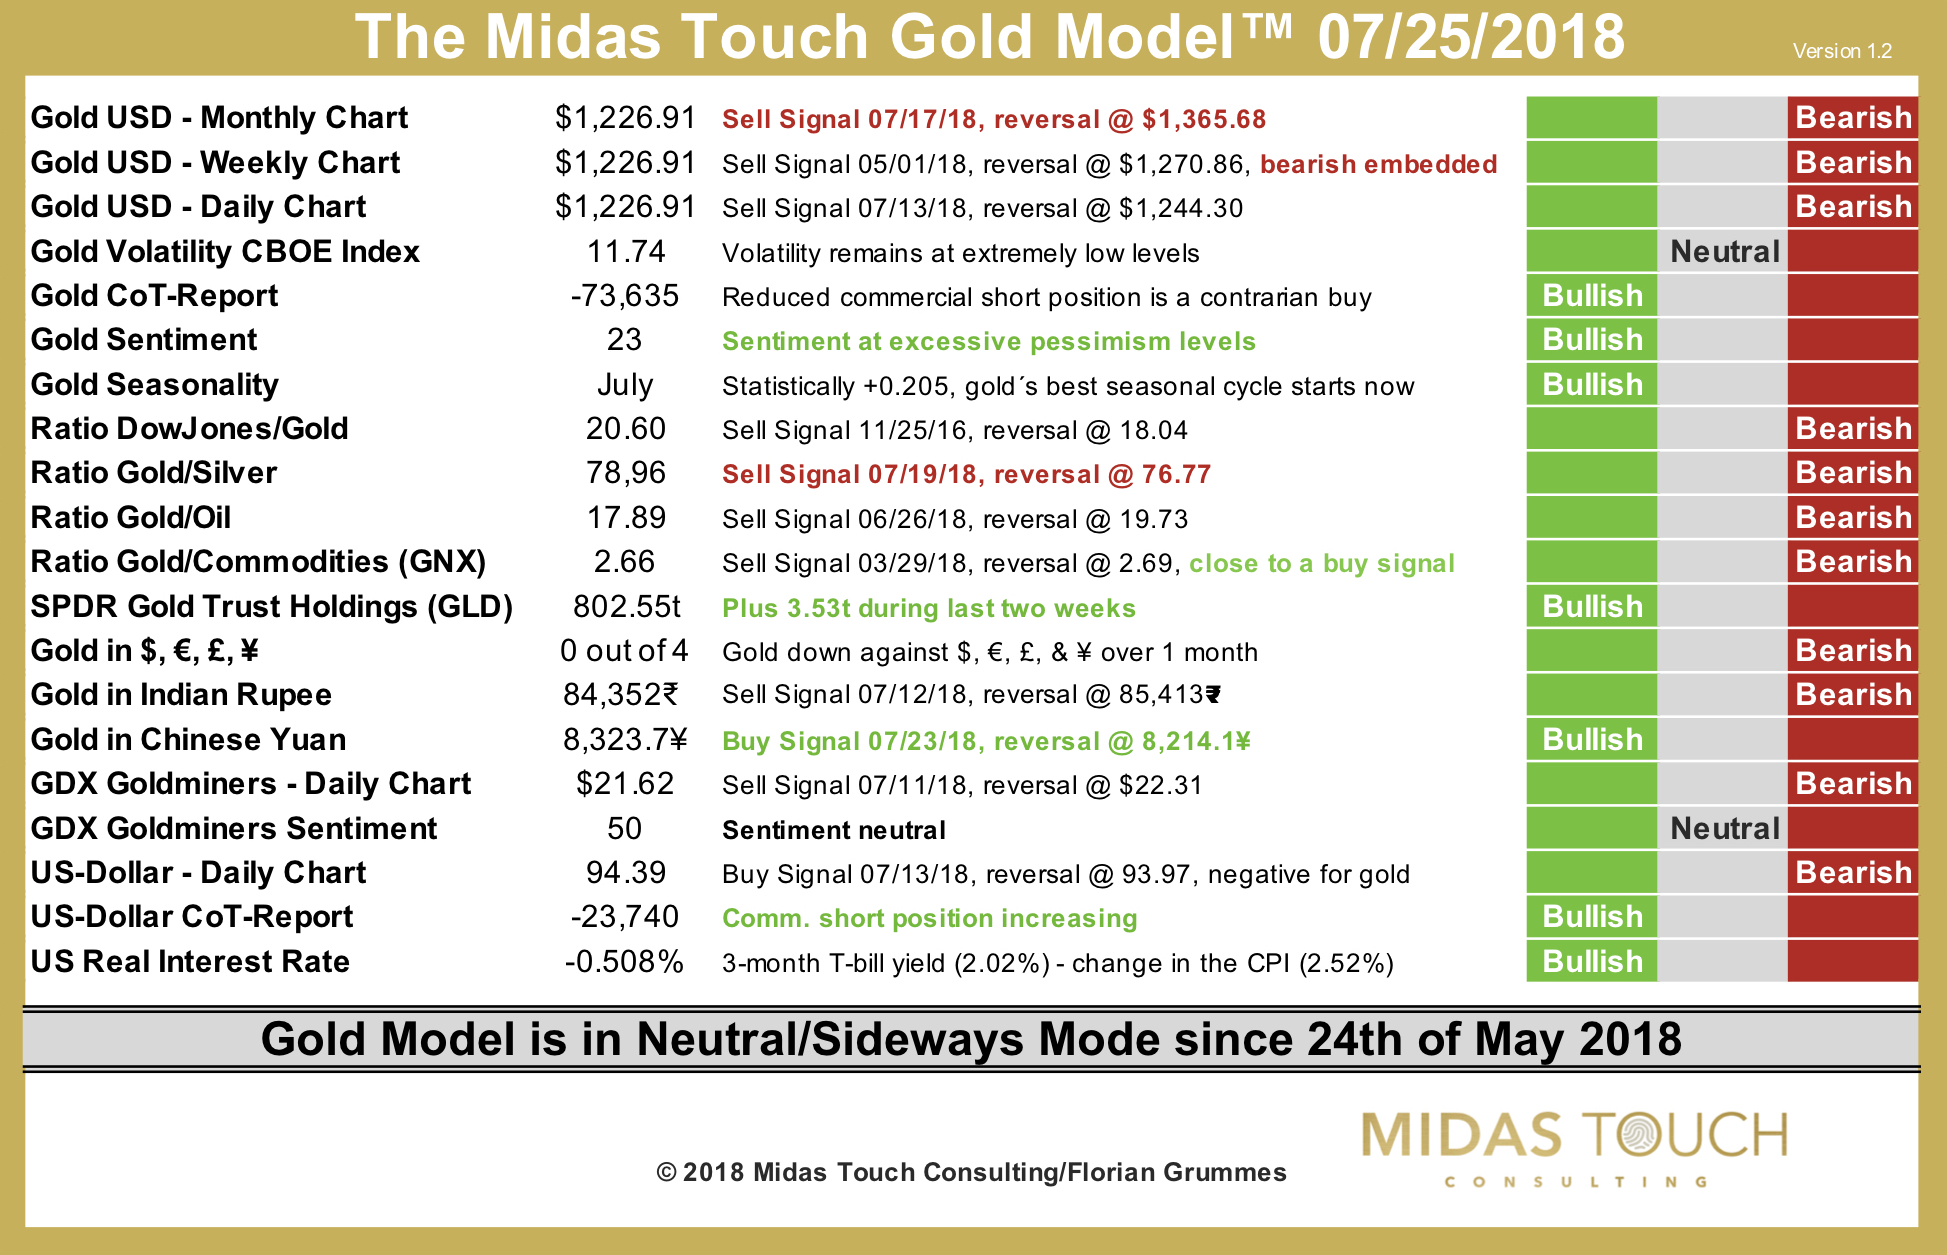 The Midas Touch Gold Model™ as of July 25th, 2018